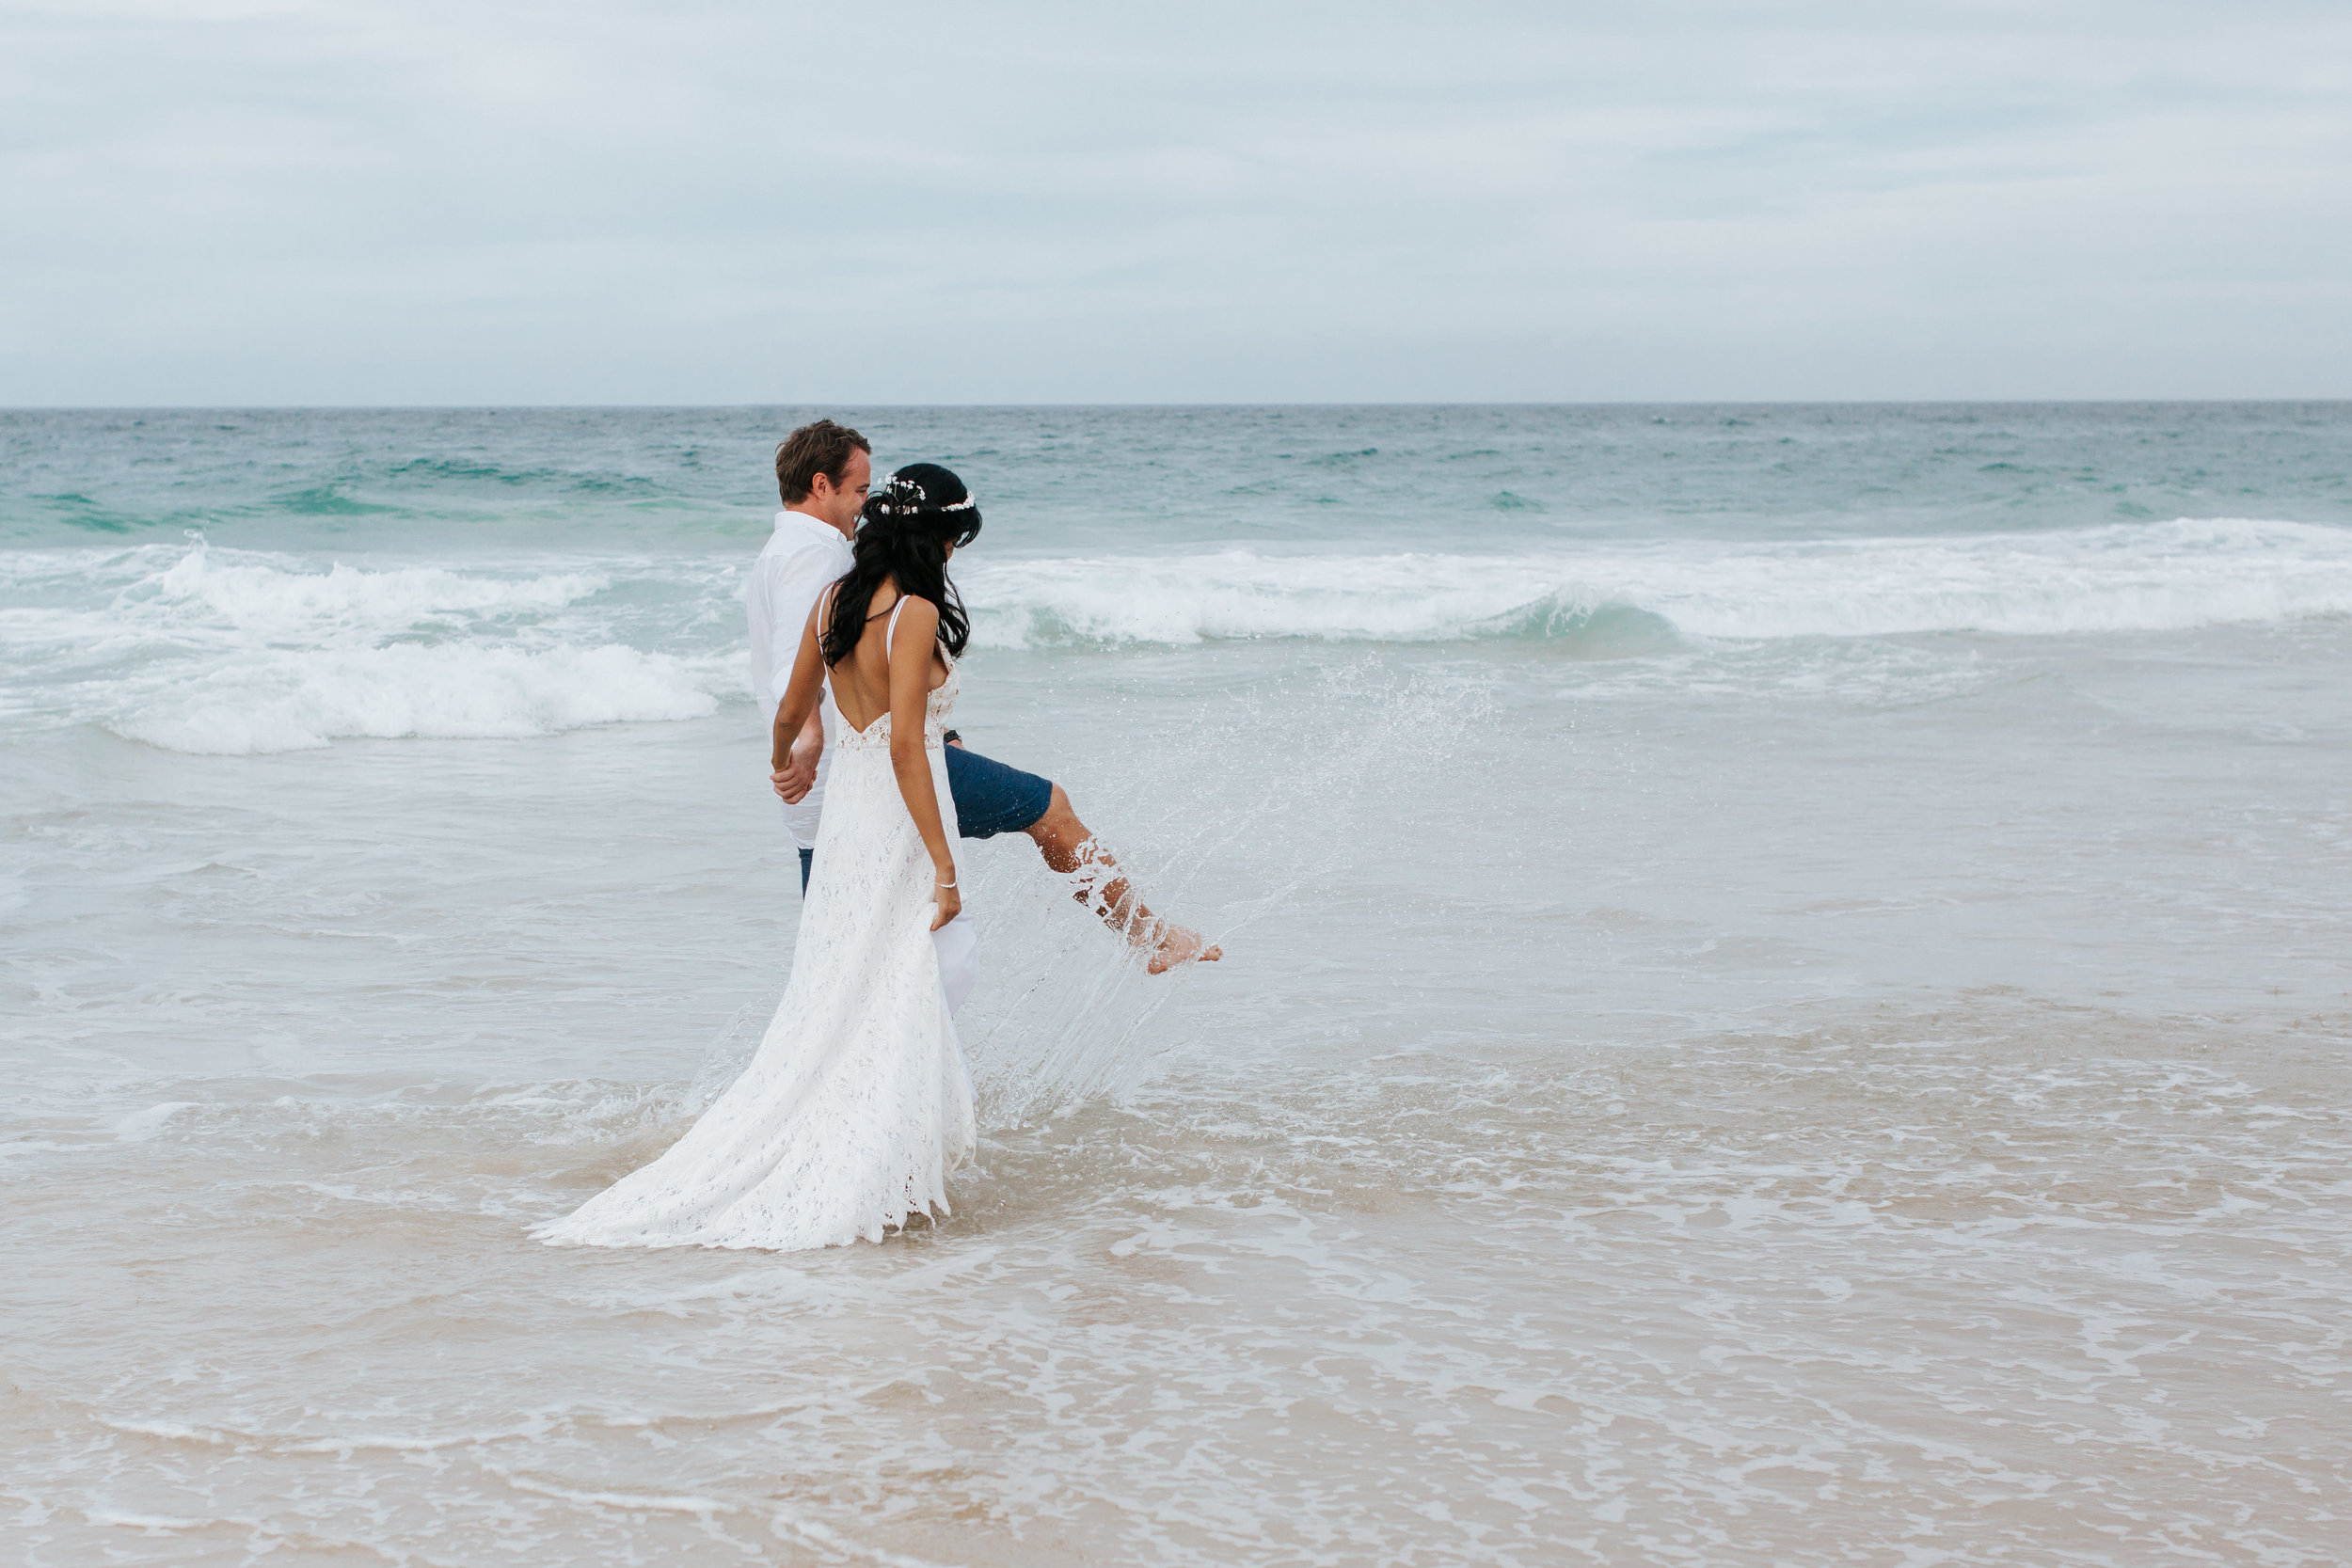 Brisbane family photographer kym renay.walsh.wed 039.jpg